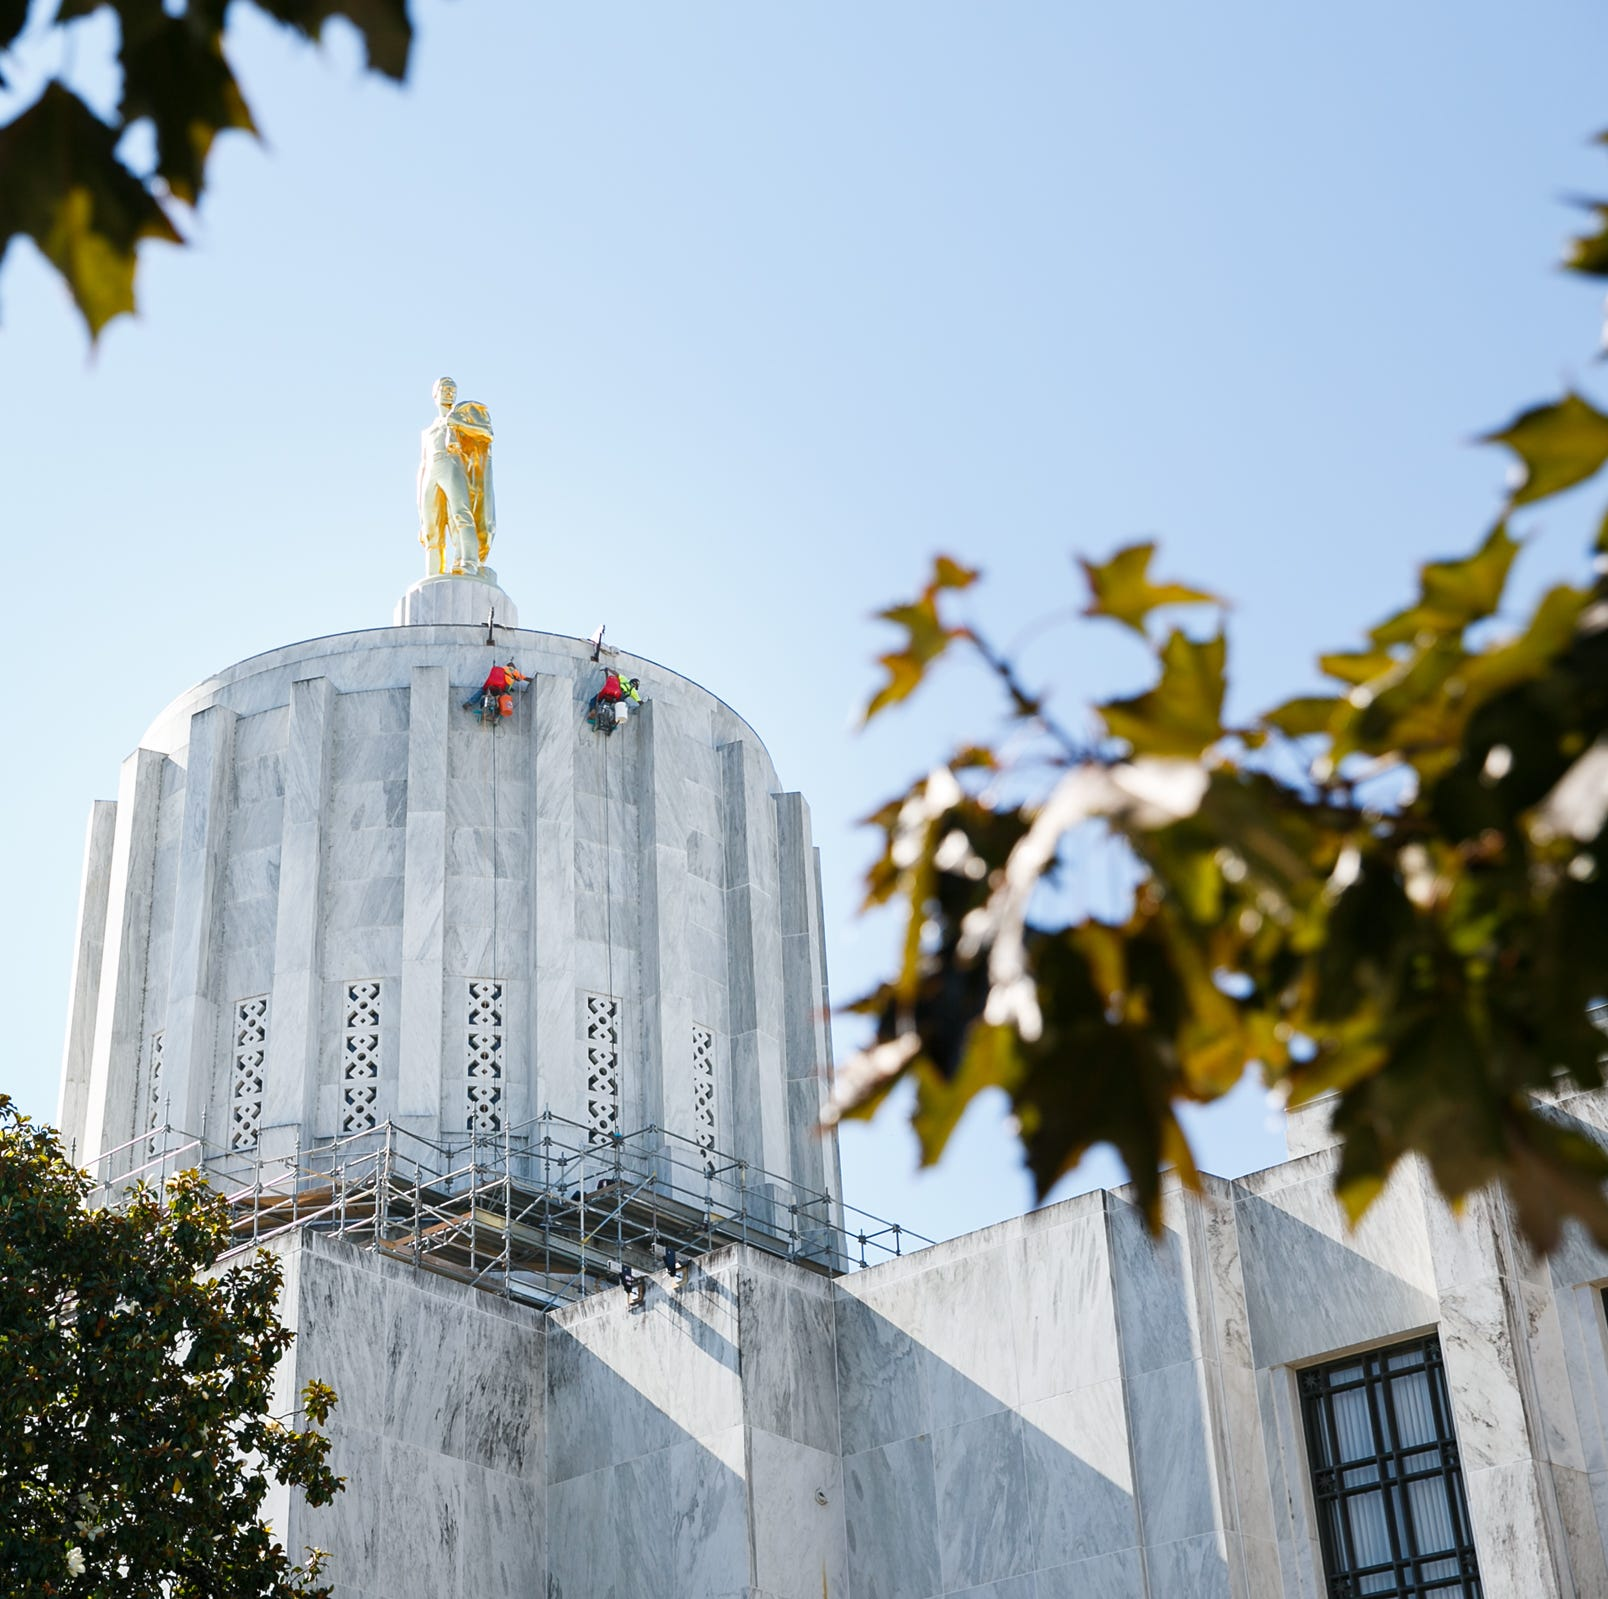 Commercial, labor taxes among ideas to raise $2 billion for Oregon schools